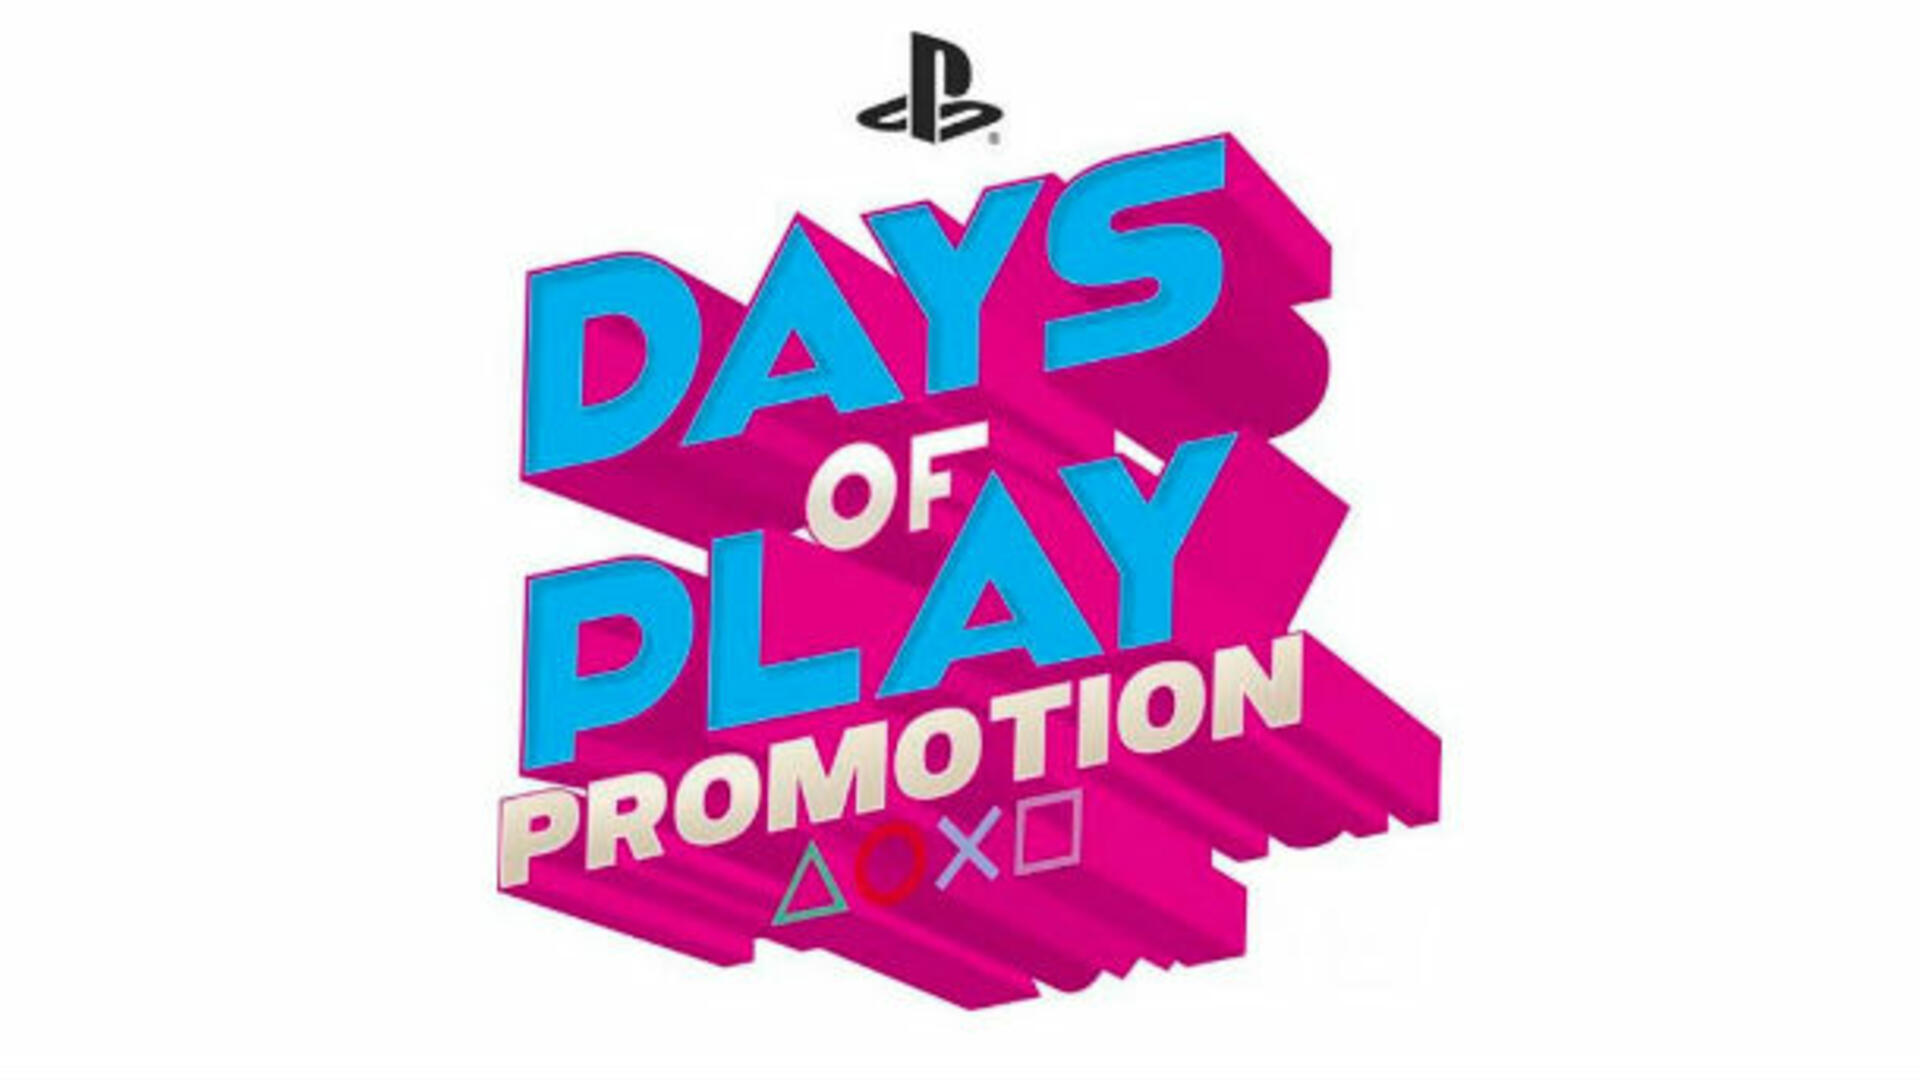 PlayStation Days of Play Promo May Be Returning Soon